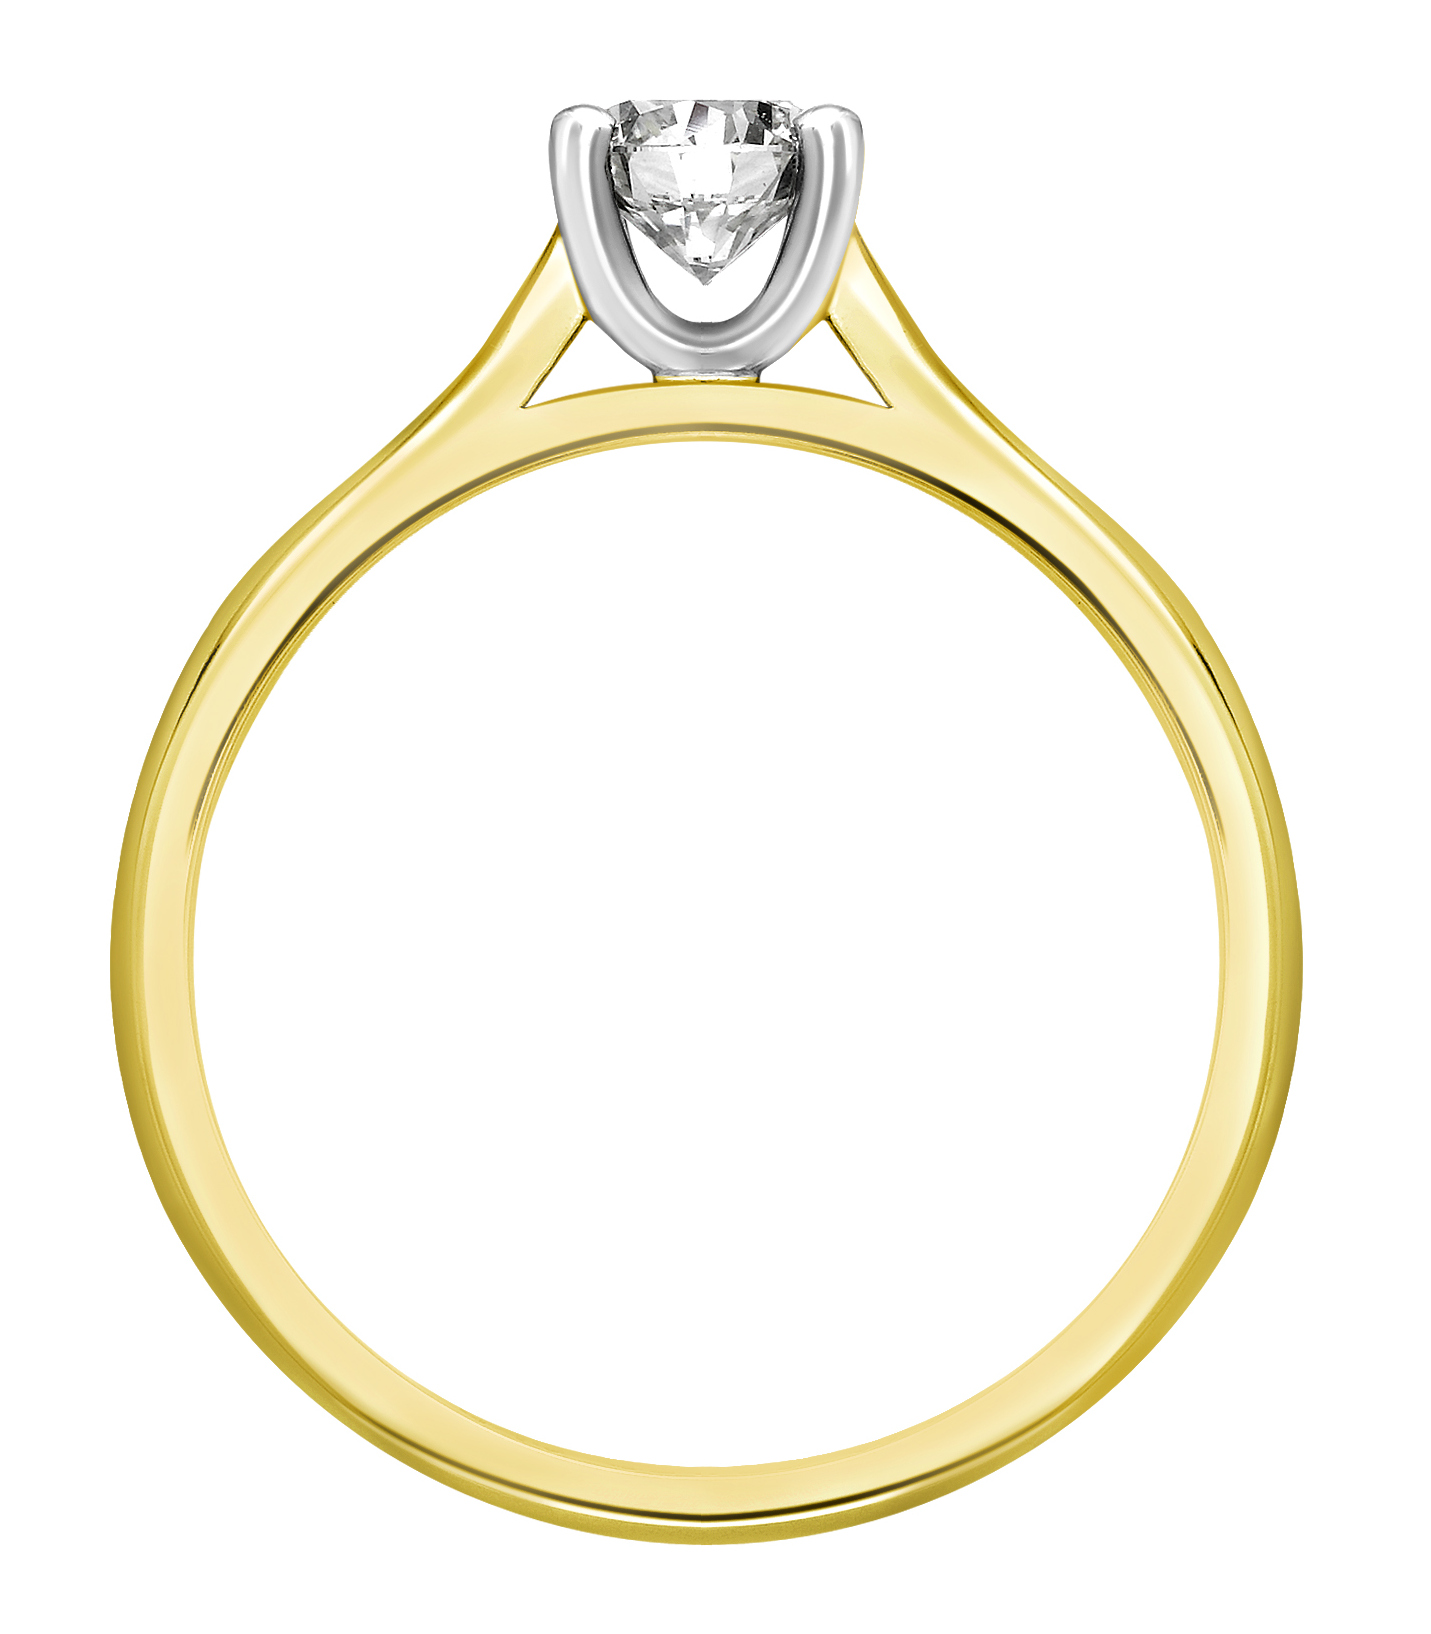 Round Four Claw Yellow Gold Engagement Ring GRC680YG Image 2